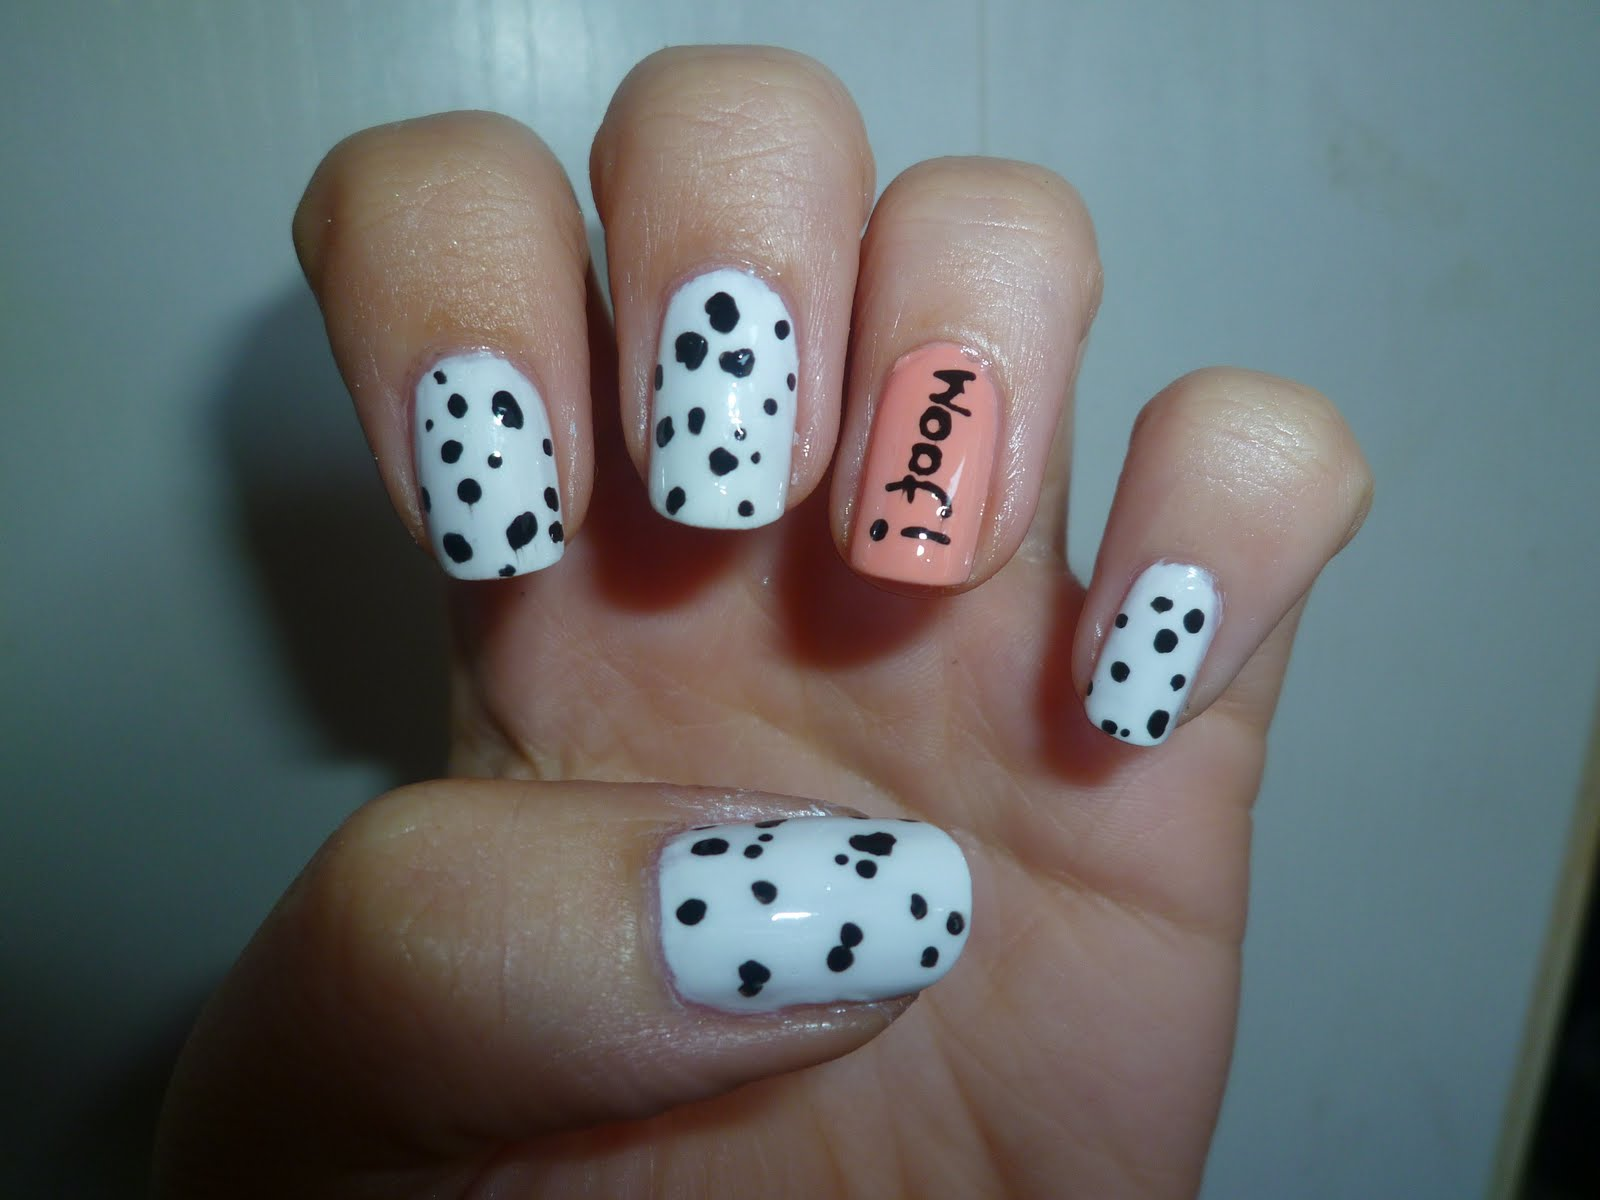 the little curly girl: Just some pictures of nail art really...